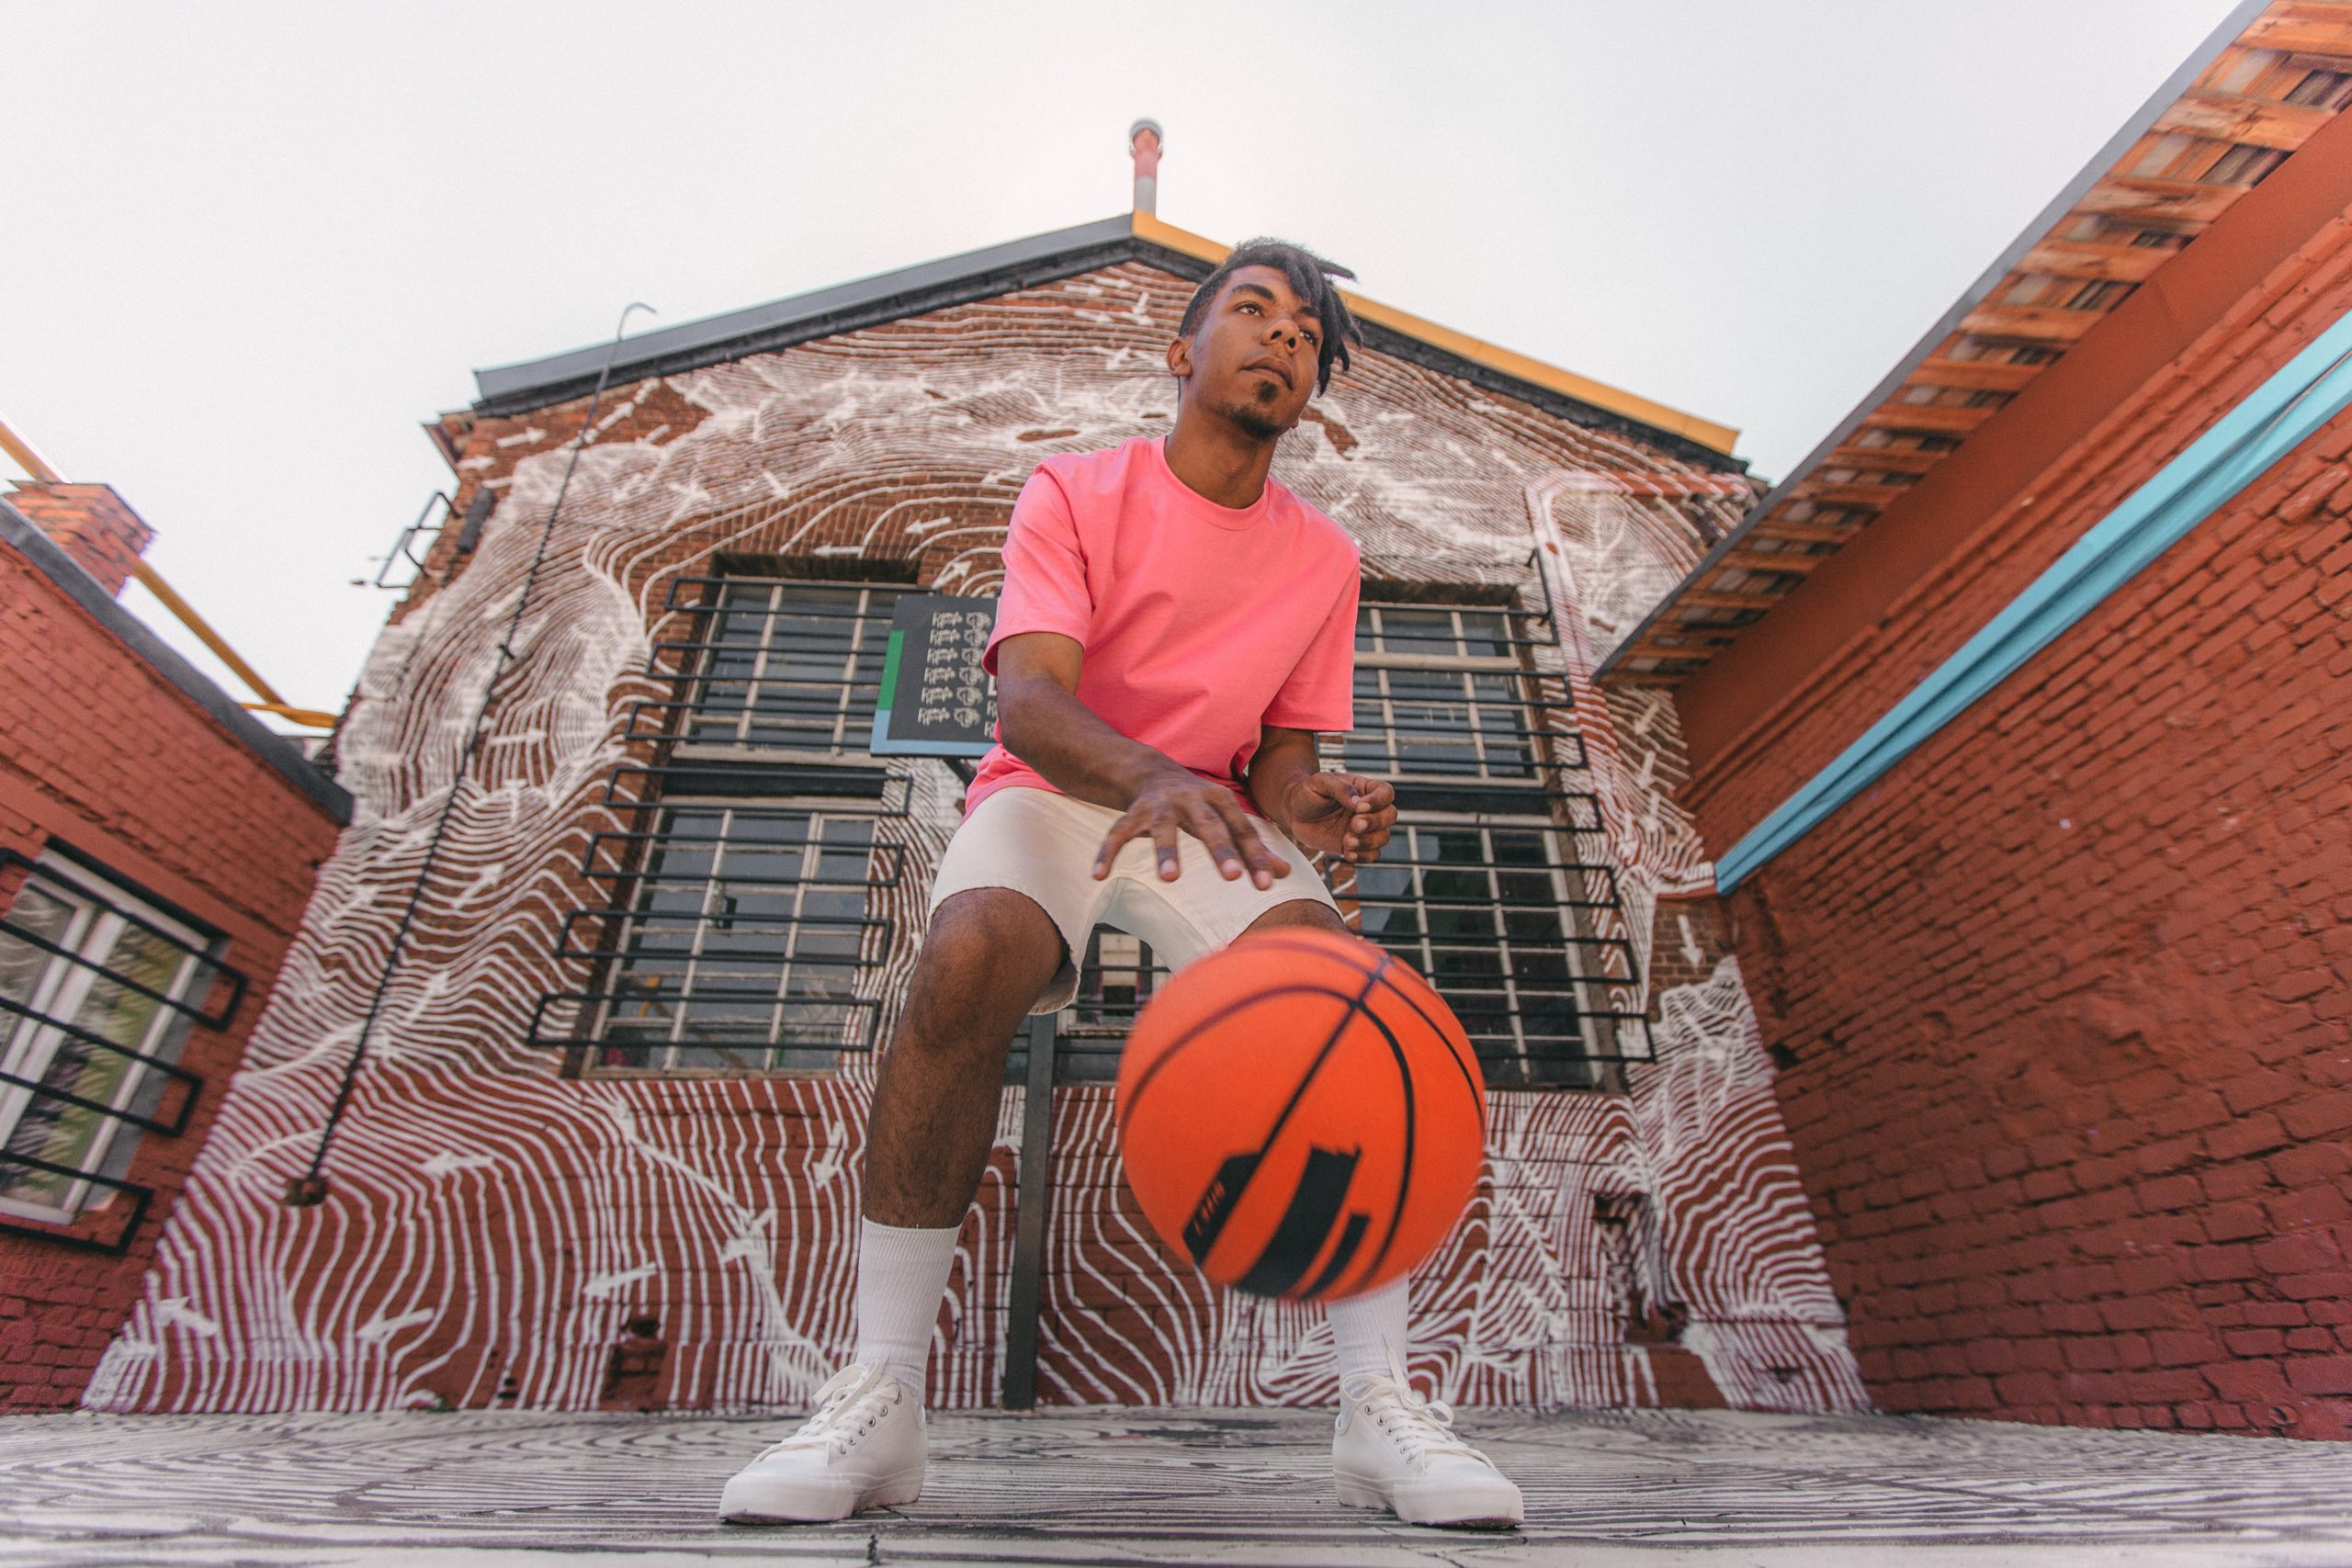 man playing basketball to get rid of man breast in a month